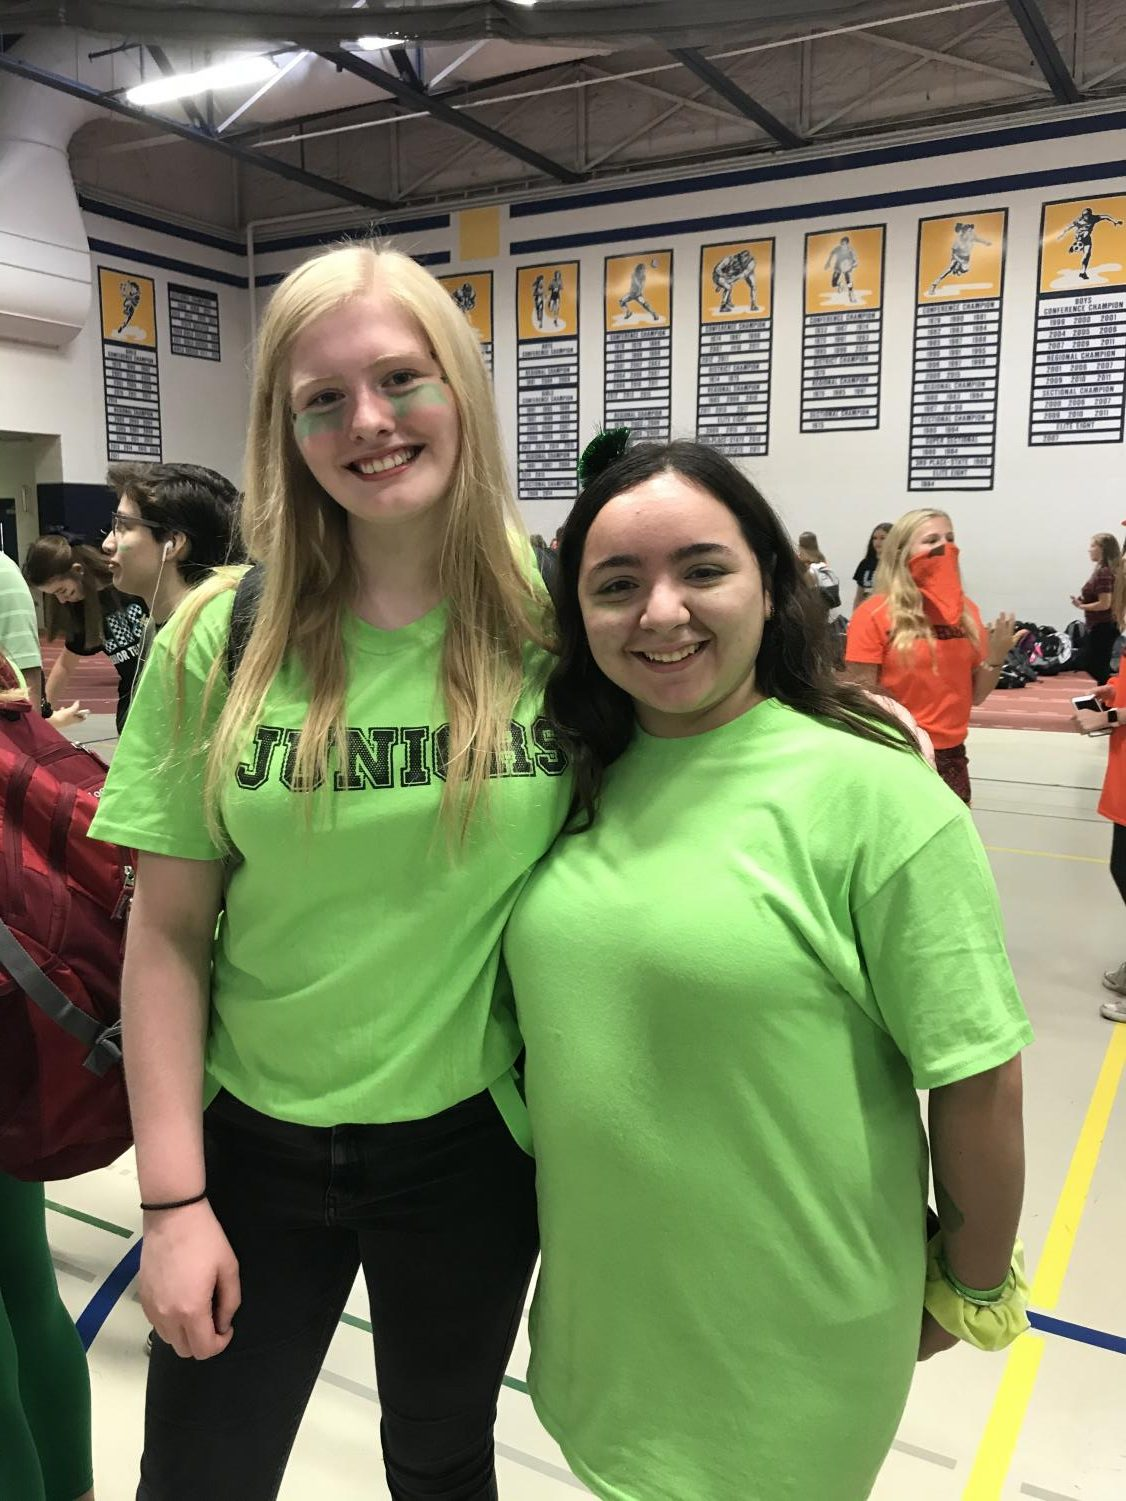 Students from all grades have the opportunity to participate in skits and games during spirit week. Pictured: Juniors Lauren Rearden and Calista Chaidez